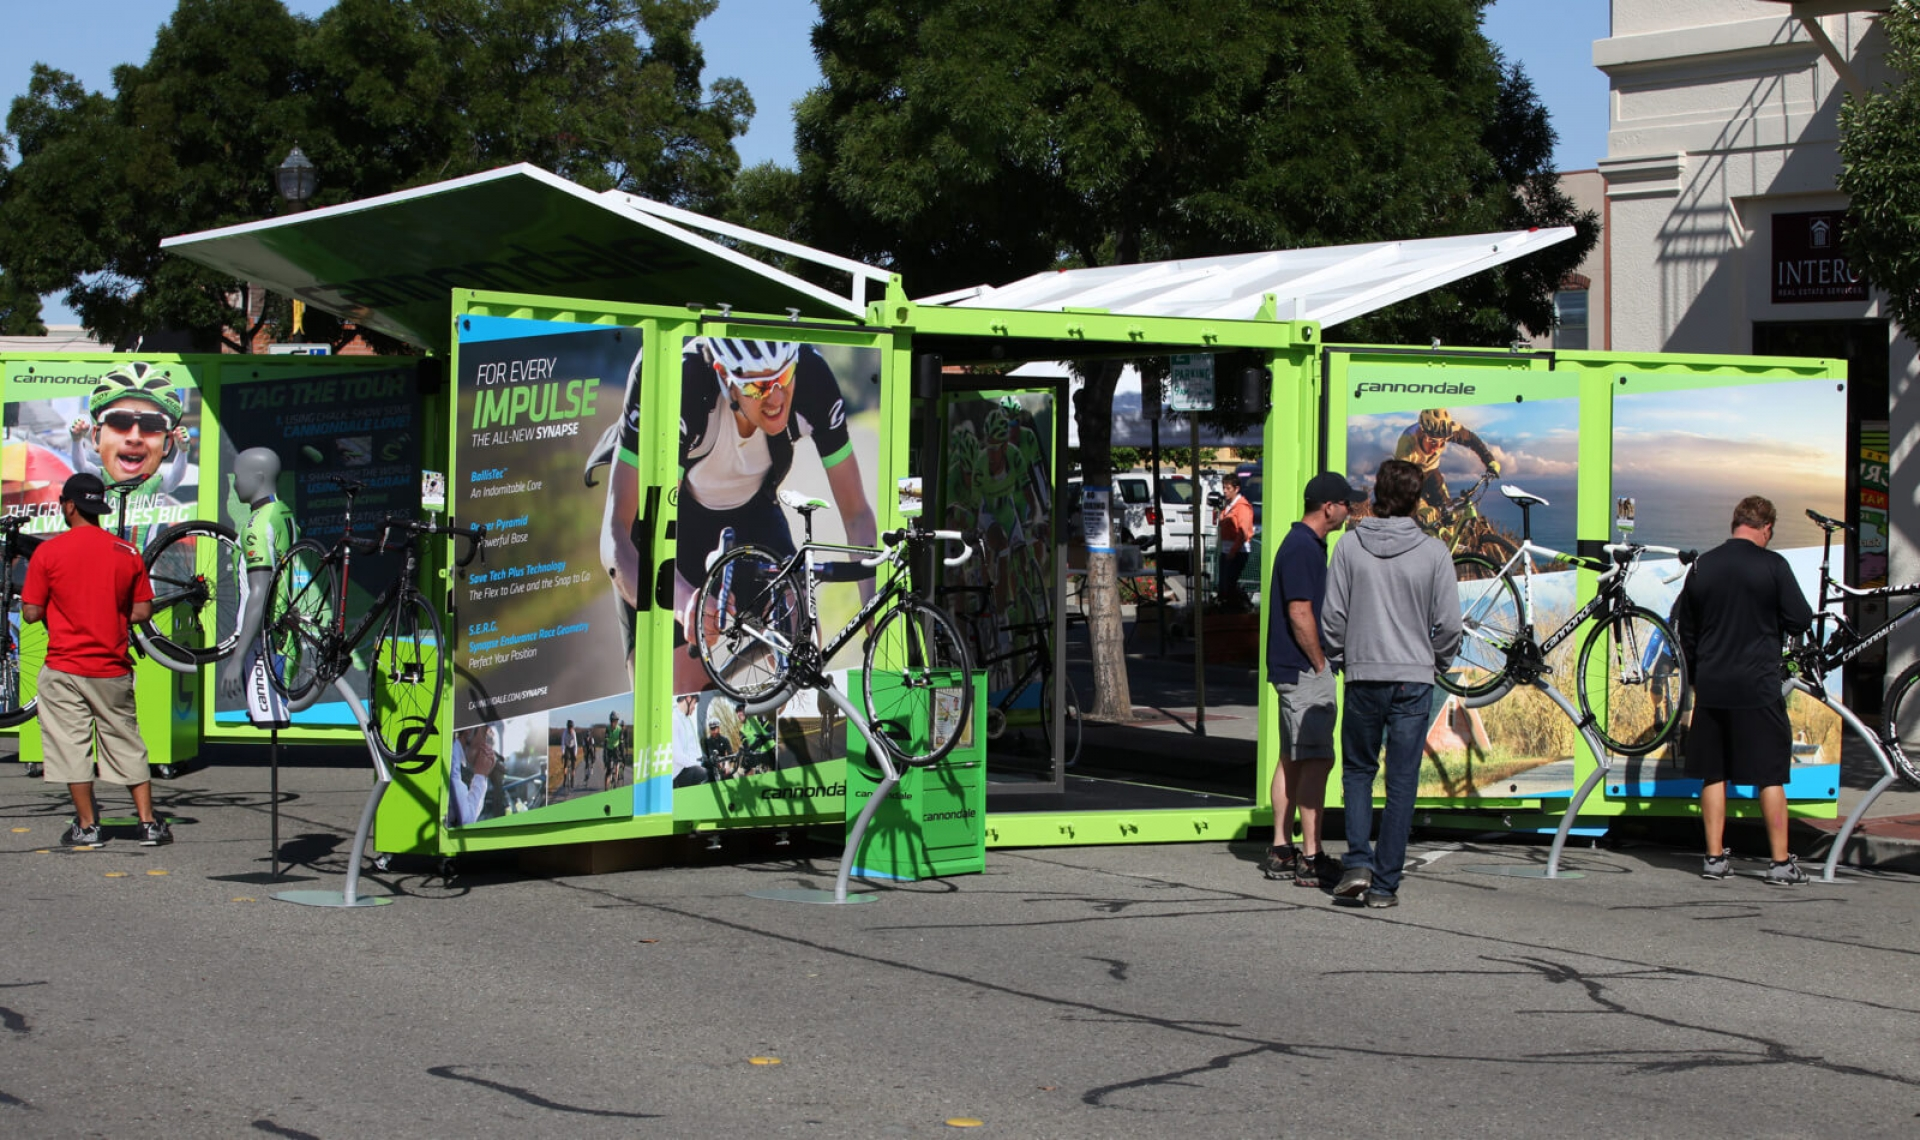 cannondale mobile display booth